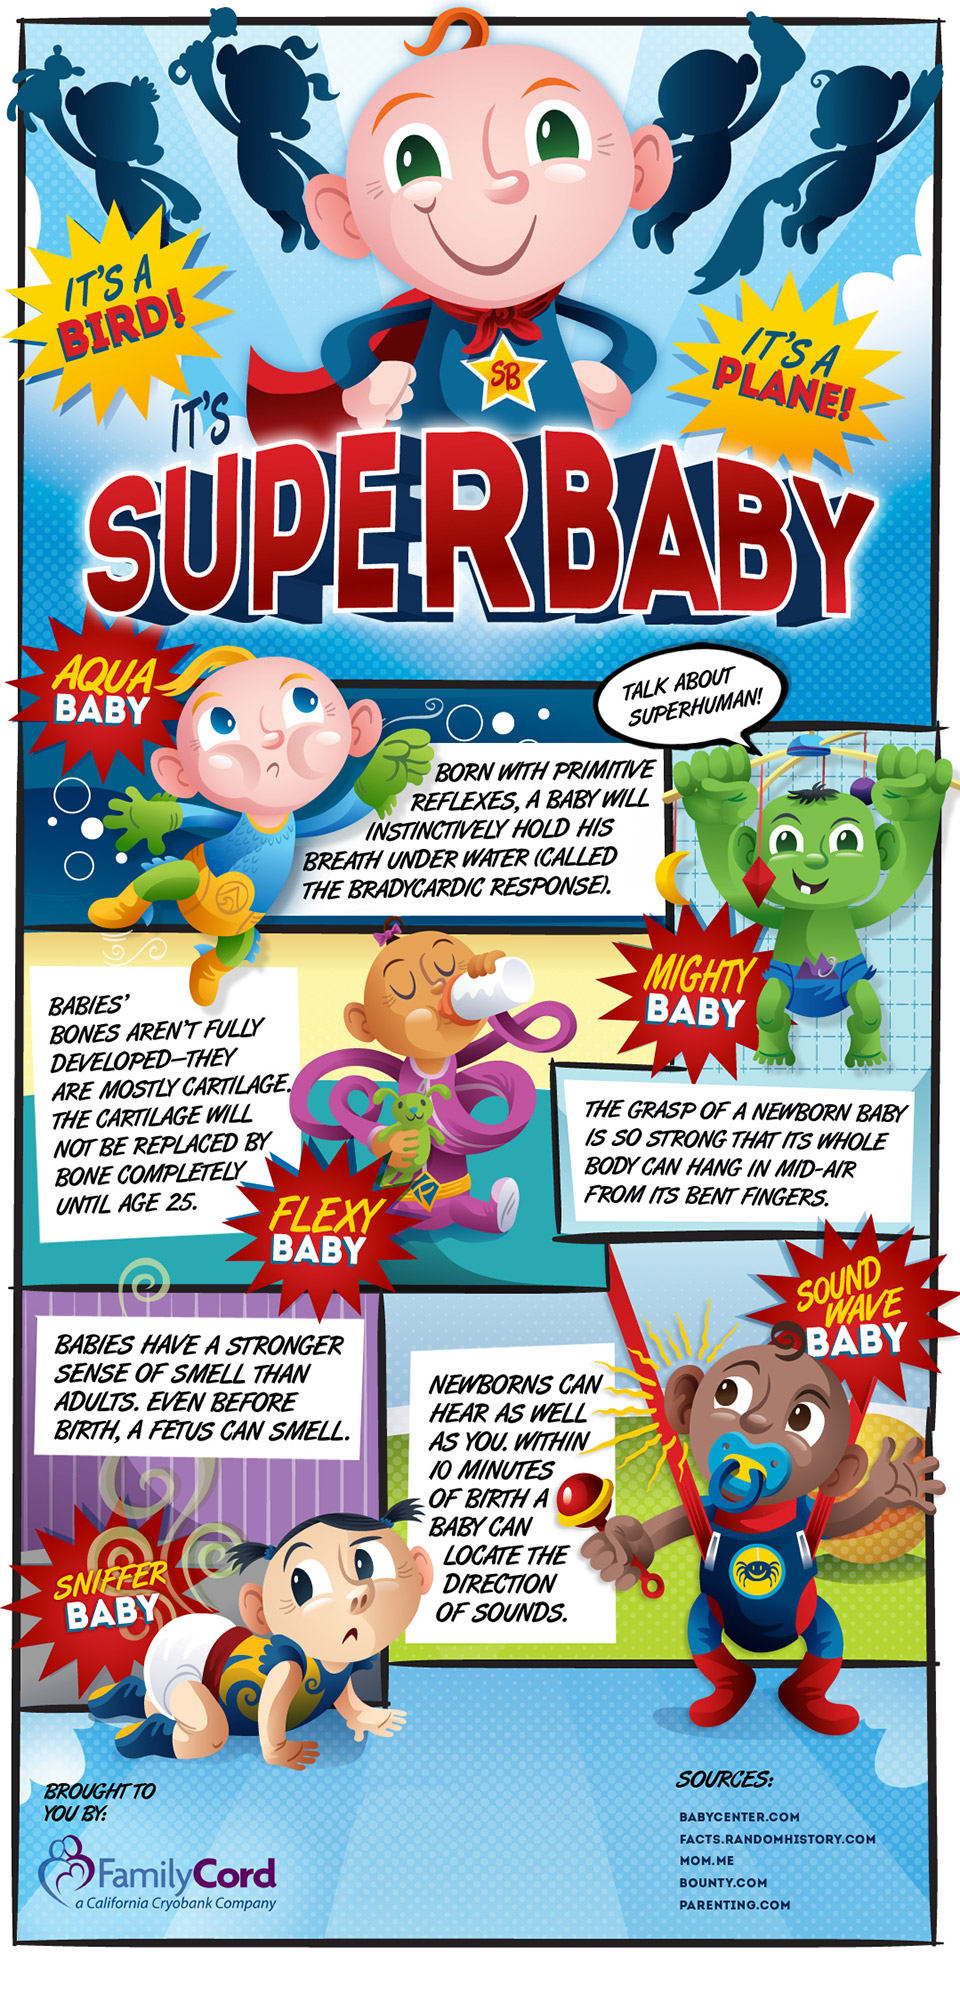 Newborn Superhero-Infographic